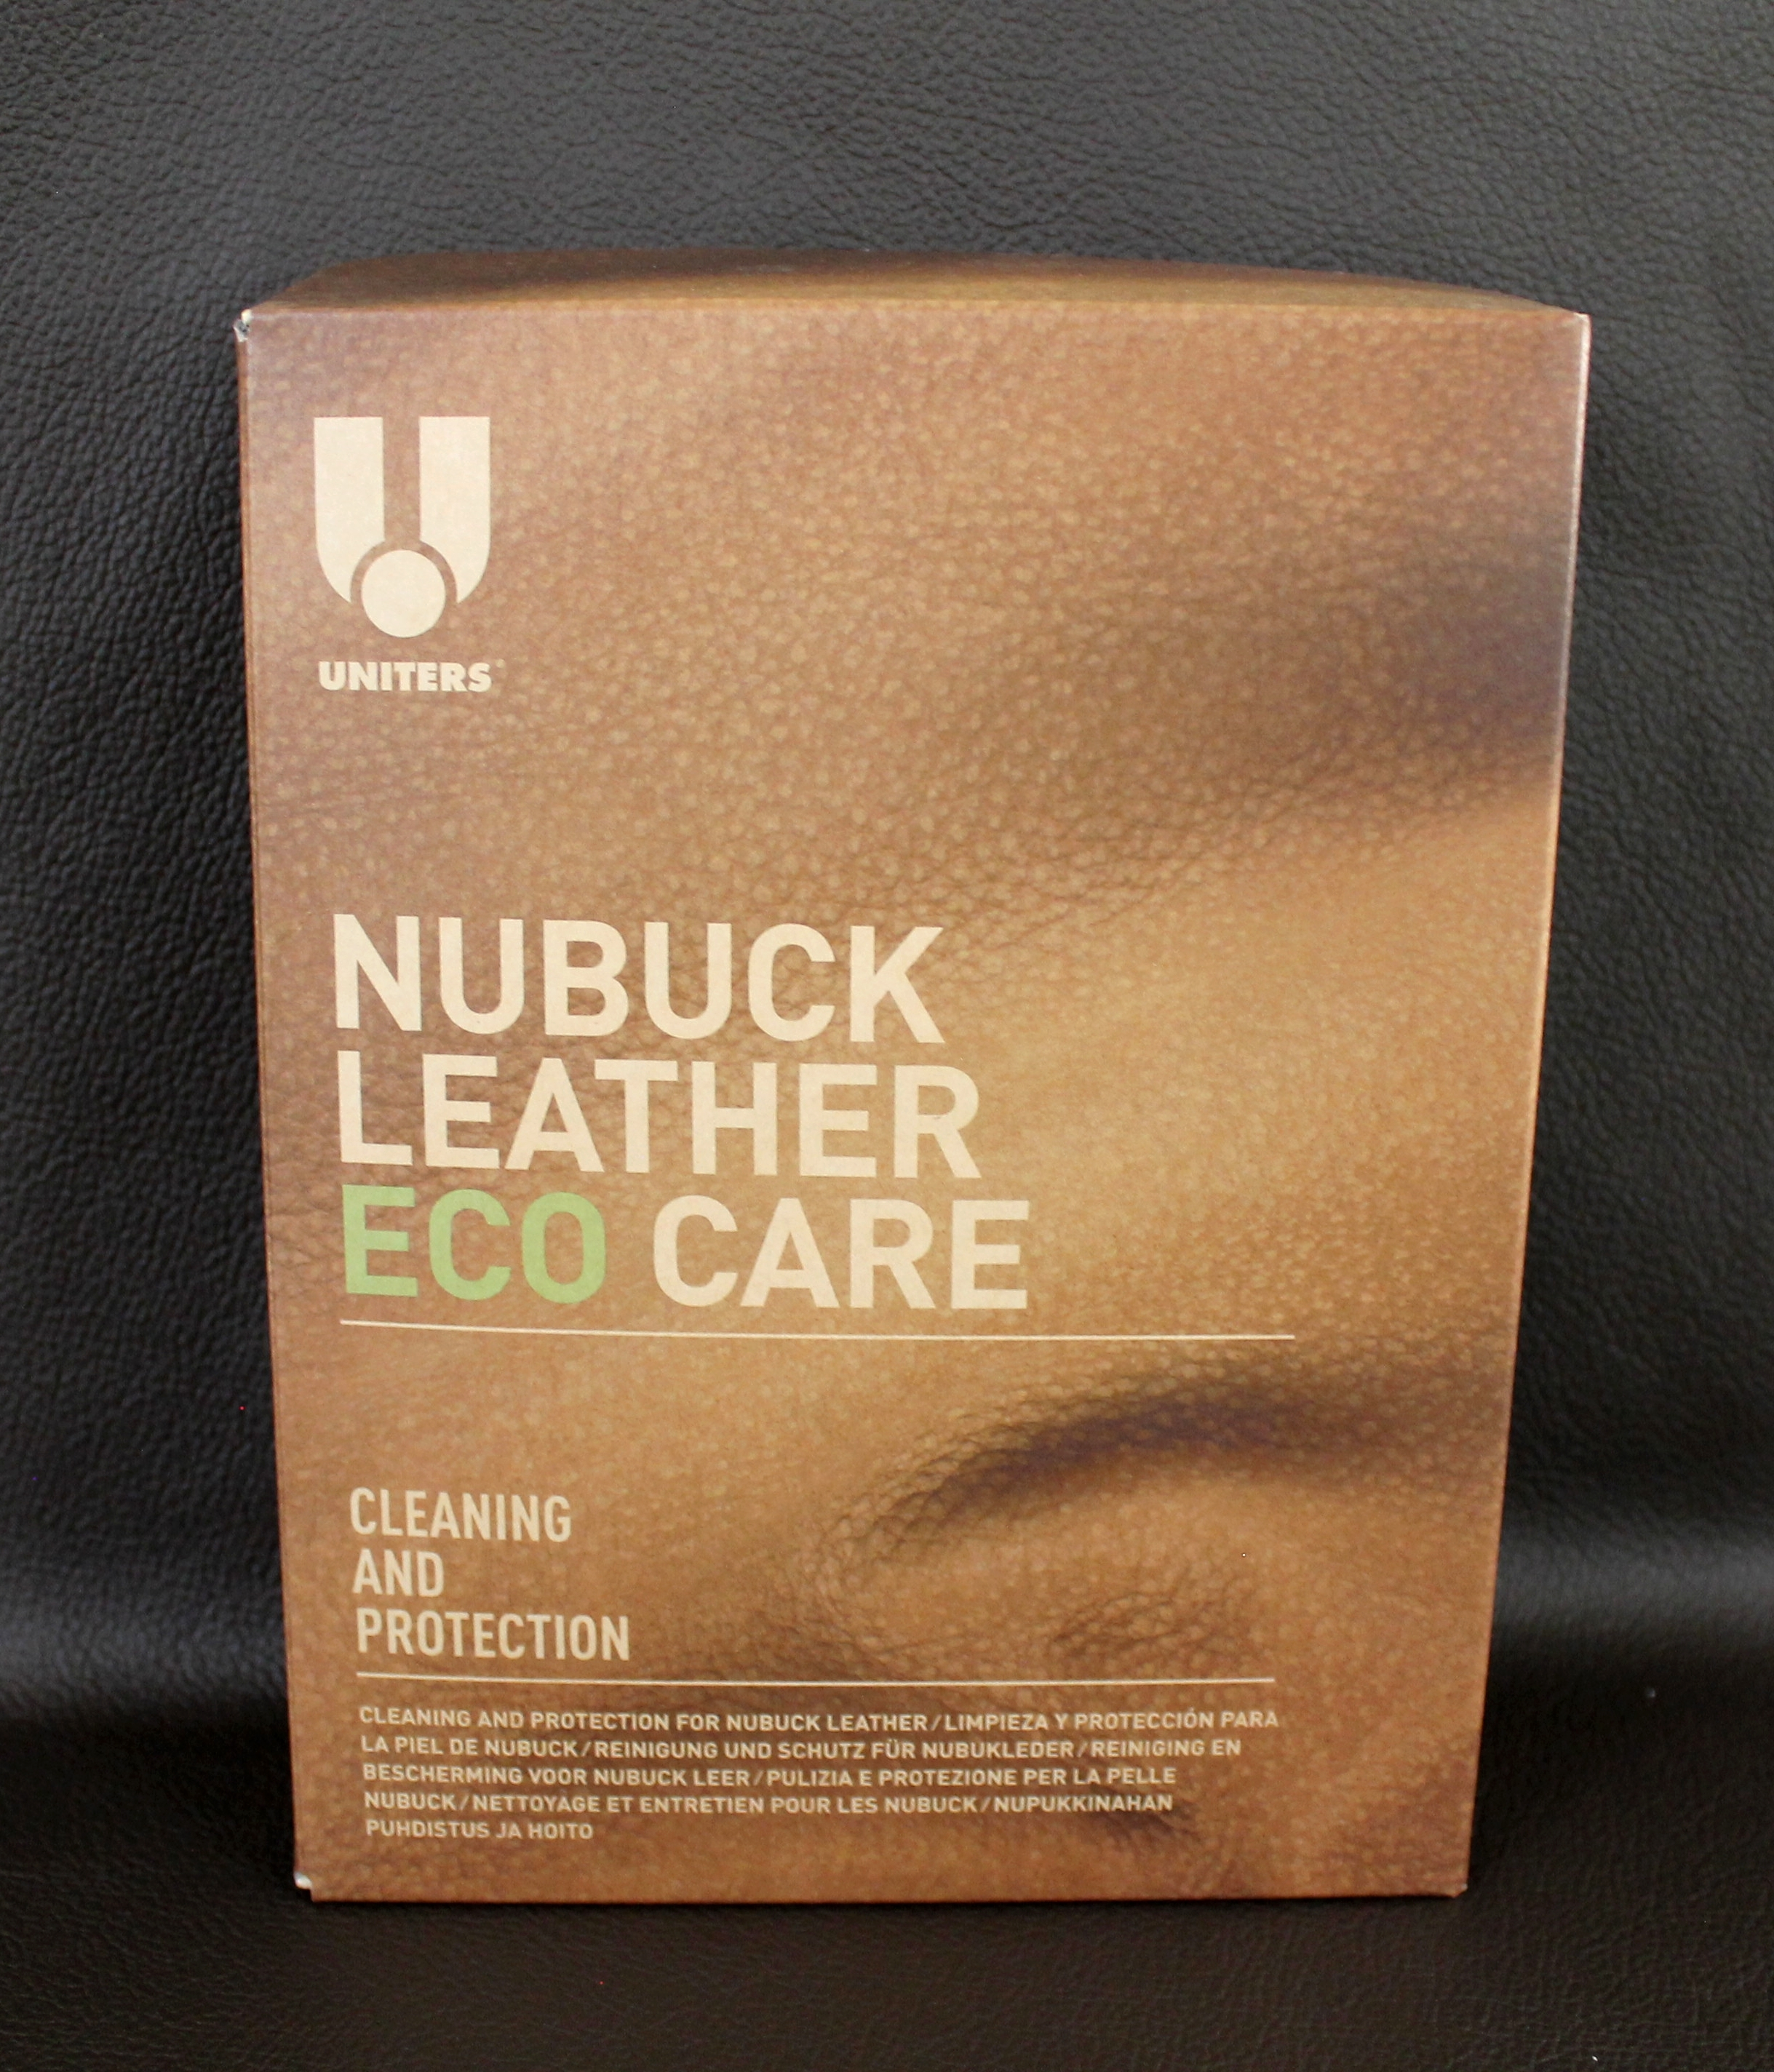 Nubuck Leather Eco Care